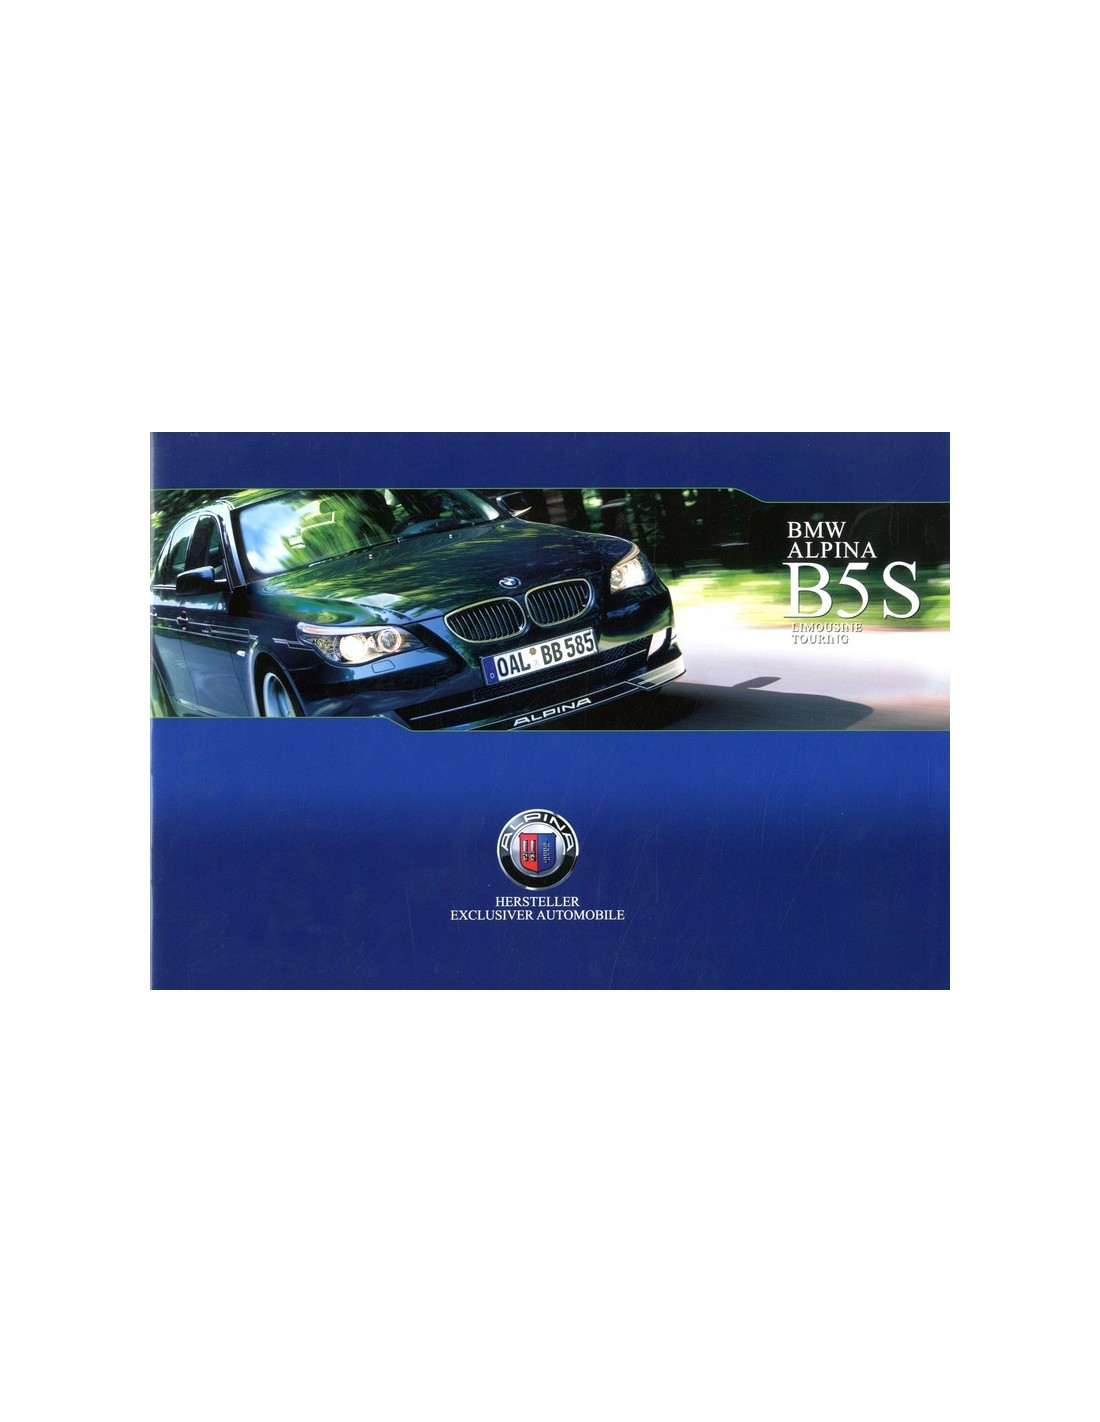 2007 Bmw Alpina B5 S Brochure German